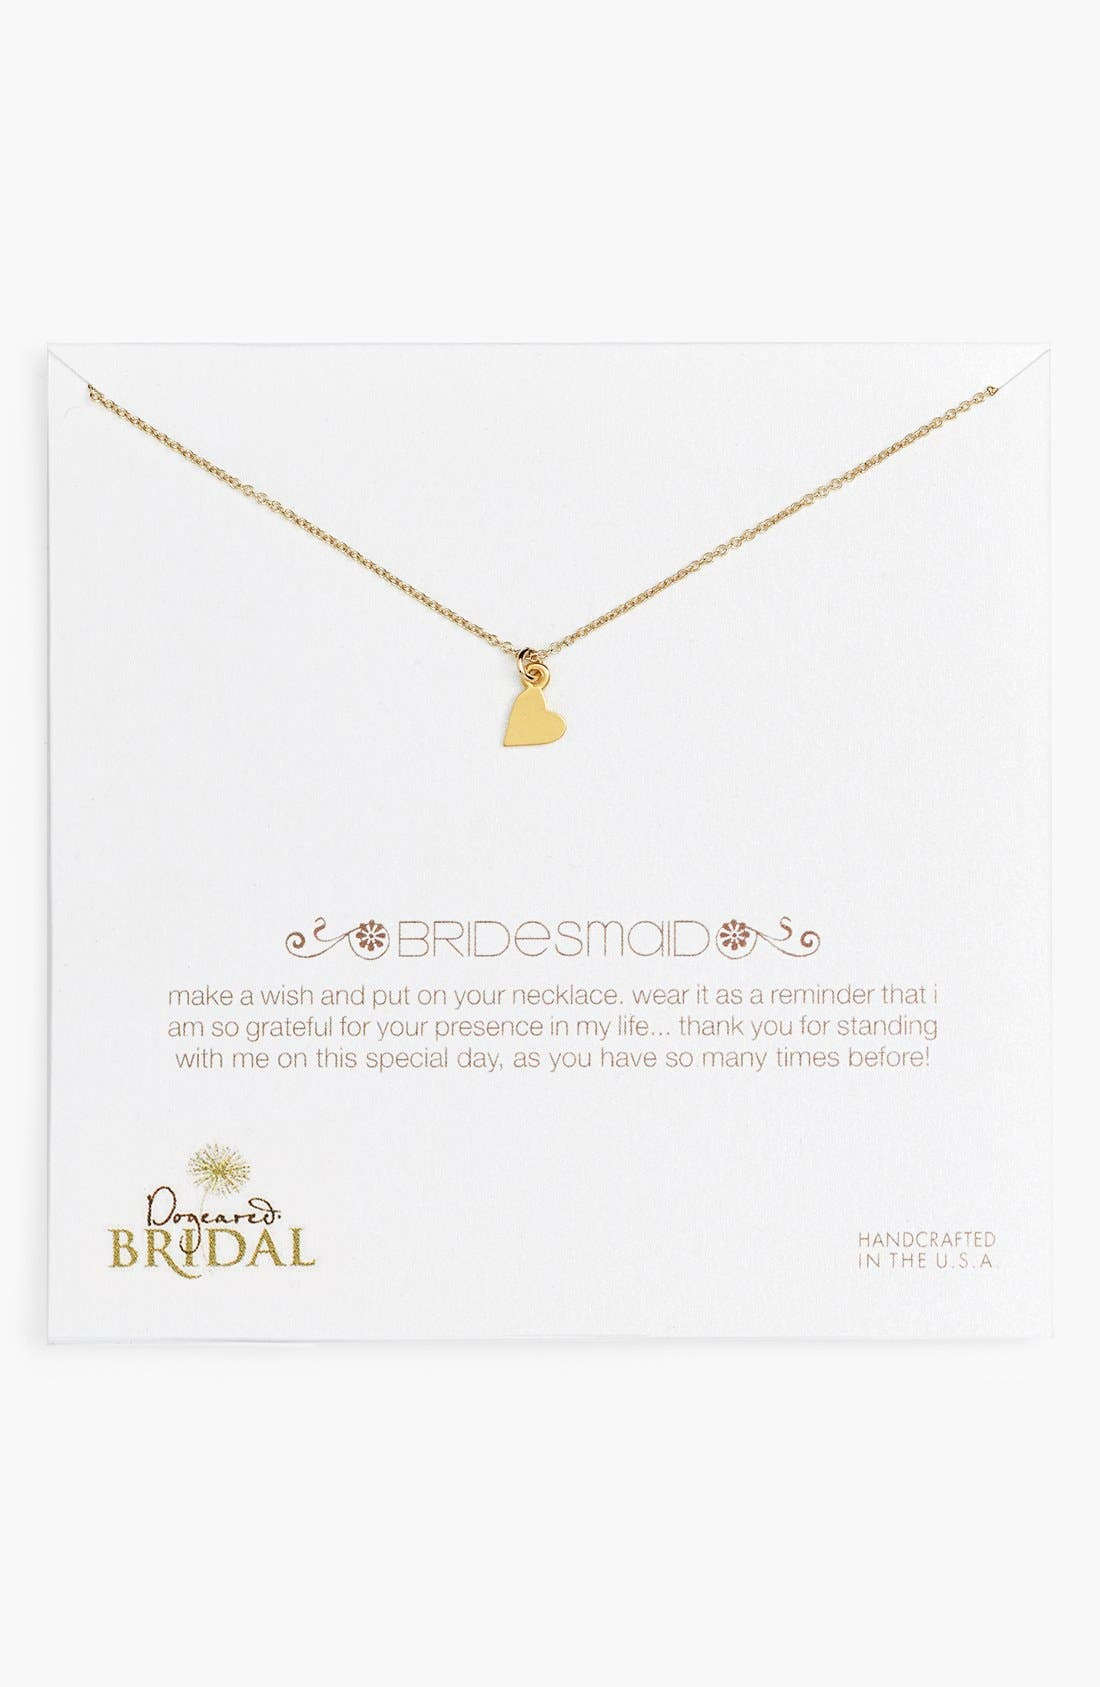 Alternate Image 1 Selected - Dogeared 'Bridesmaid - Heart' Pendant Necklace (Nordstrom Exclusive)